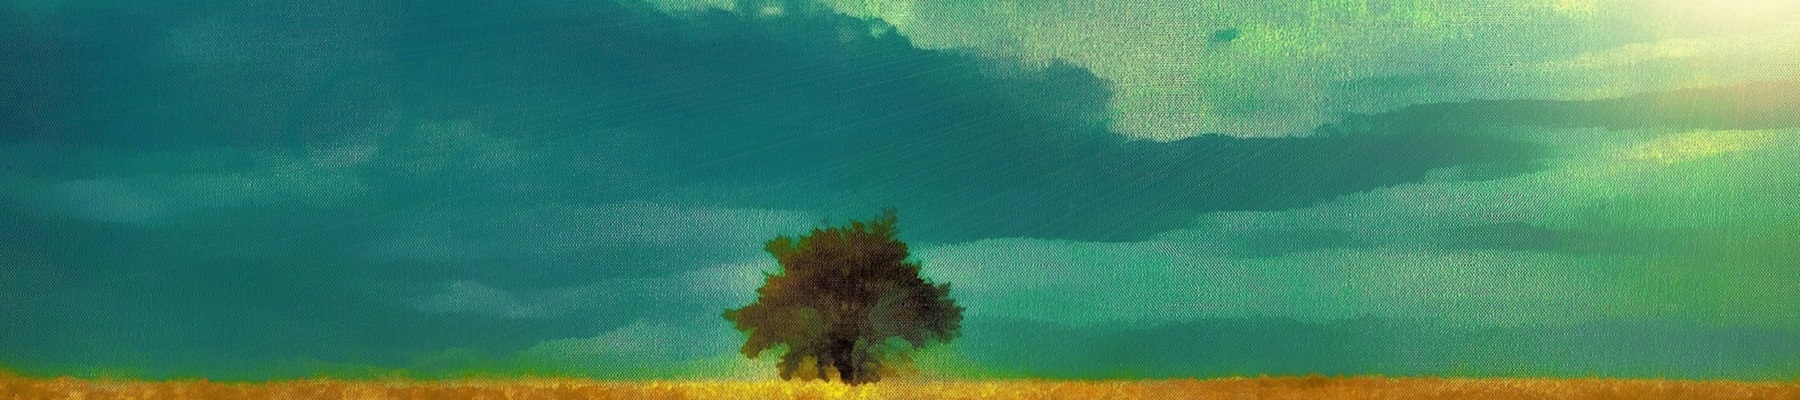 canvas-field-painting-tree